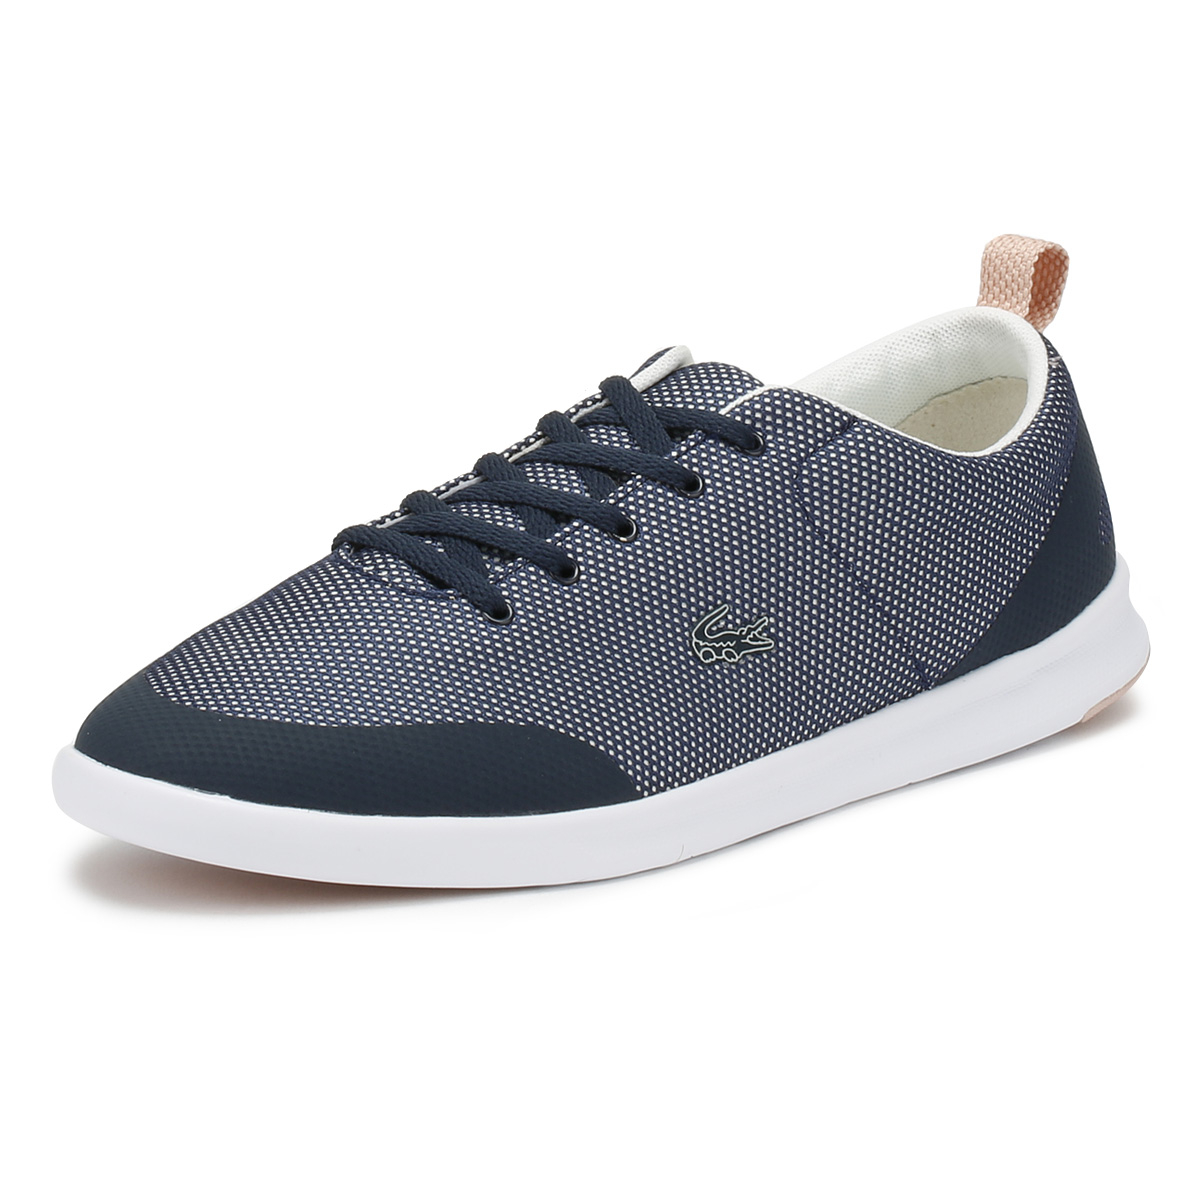 Lacoste Damenschuhe Trainers Navy Natural Avenir 218 1 1 1 Sport Casual Lace Up Schuhes dd06bd